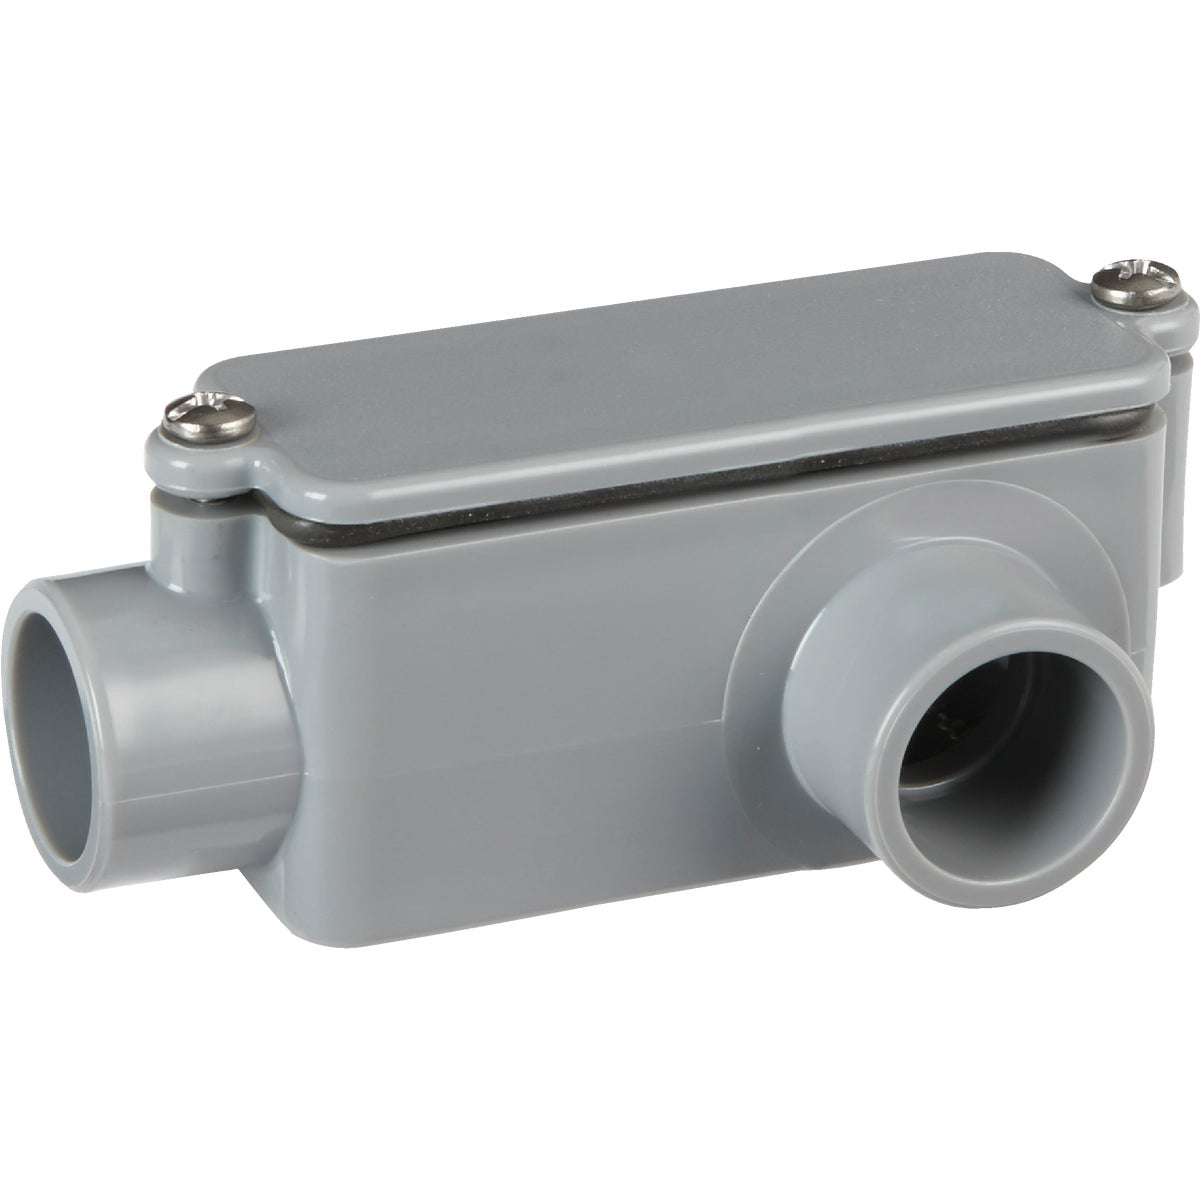 "1/2"" LL ACCESS FITTING - E984DCTN by Thomas & Betts"